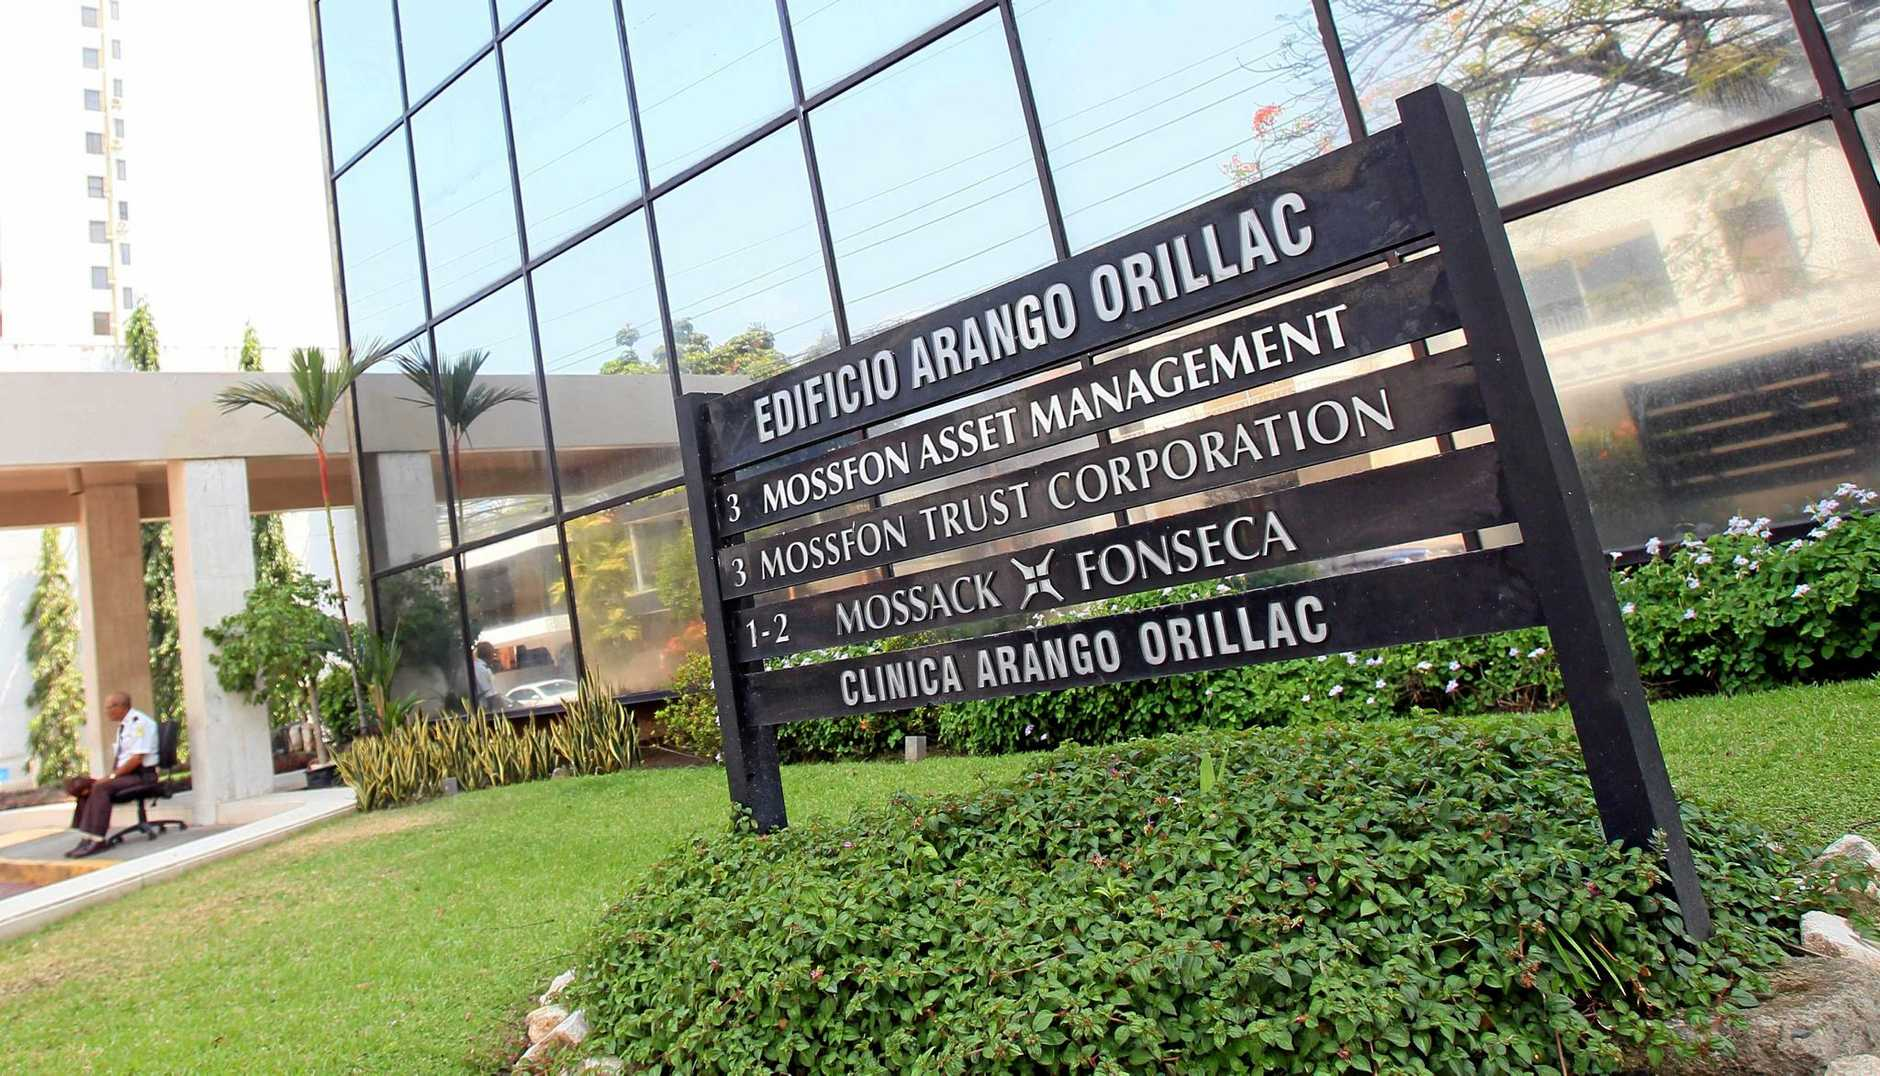 epa05242948 Photo shows the building where the office of Panamanian law firm Mossack Fonseca is located in Panama City, Panama, 03 April 2016. 11 million documents from Mossack Fonseca database were leaked allegedly exposing high profile tax evasion and money laundering among the world's elite.  EPA/Alejandro Bolivar